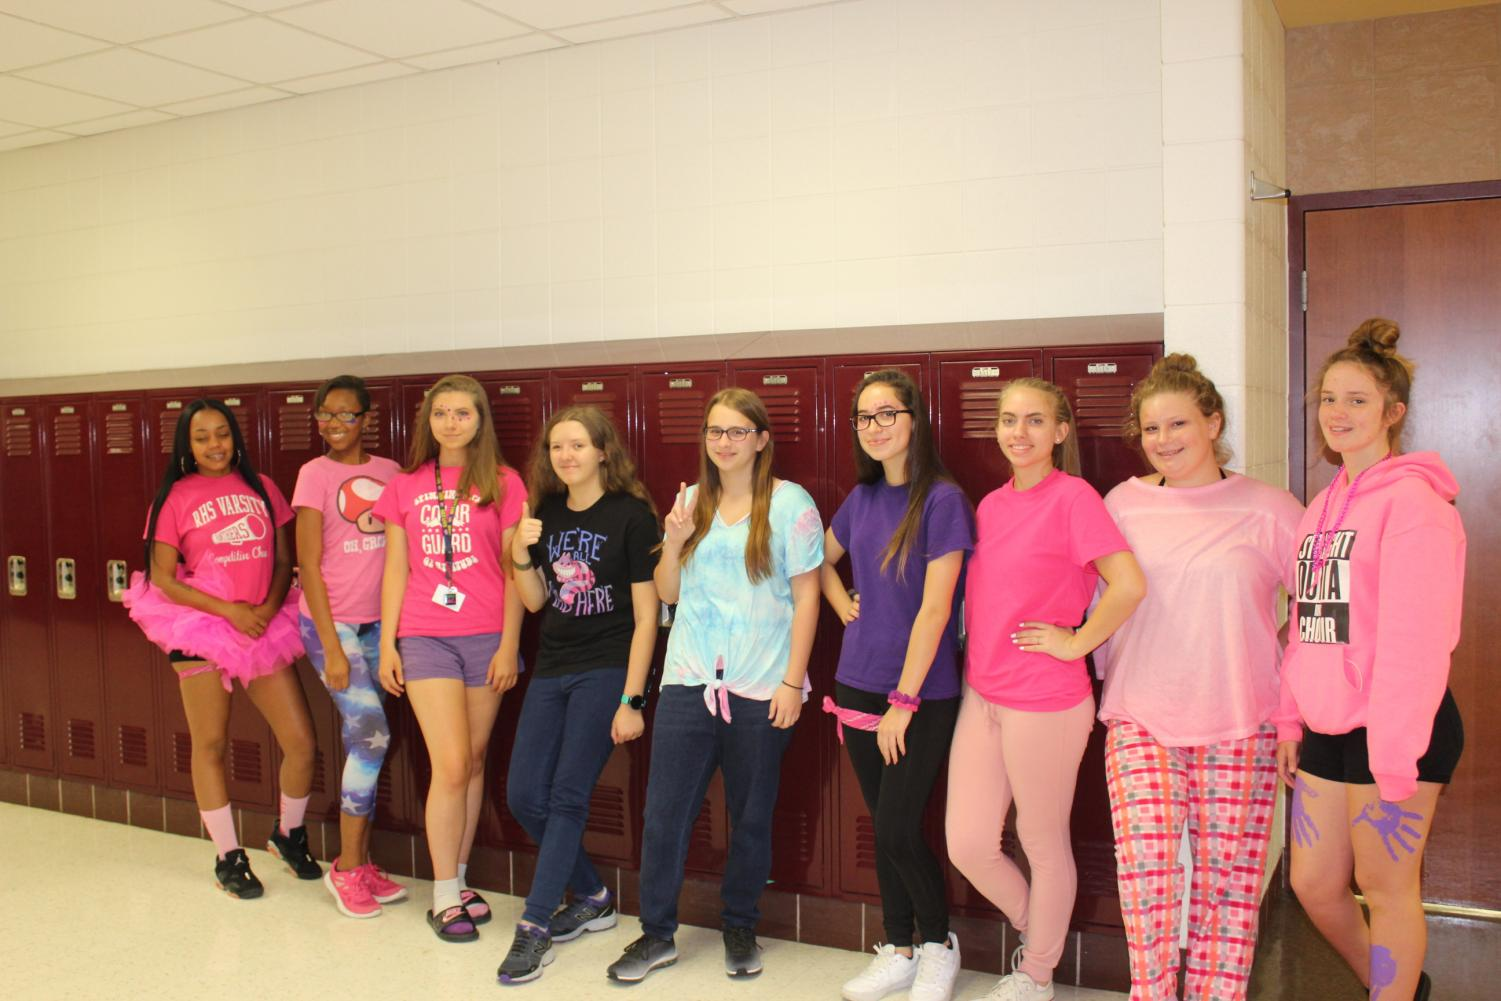 Students show their school spirit.